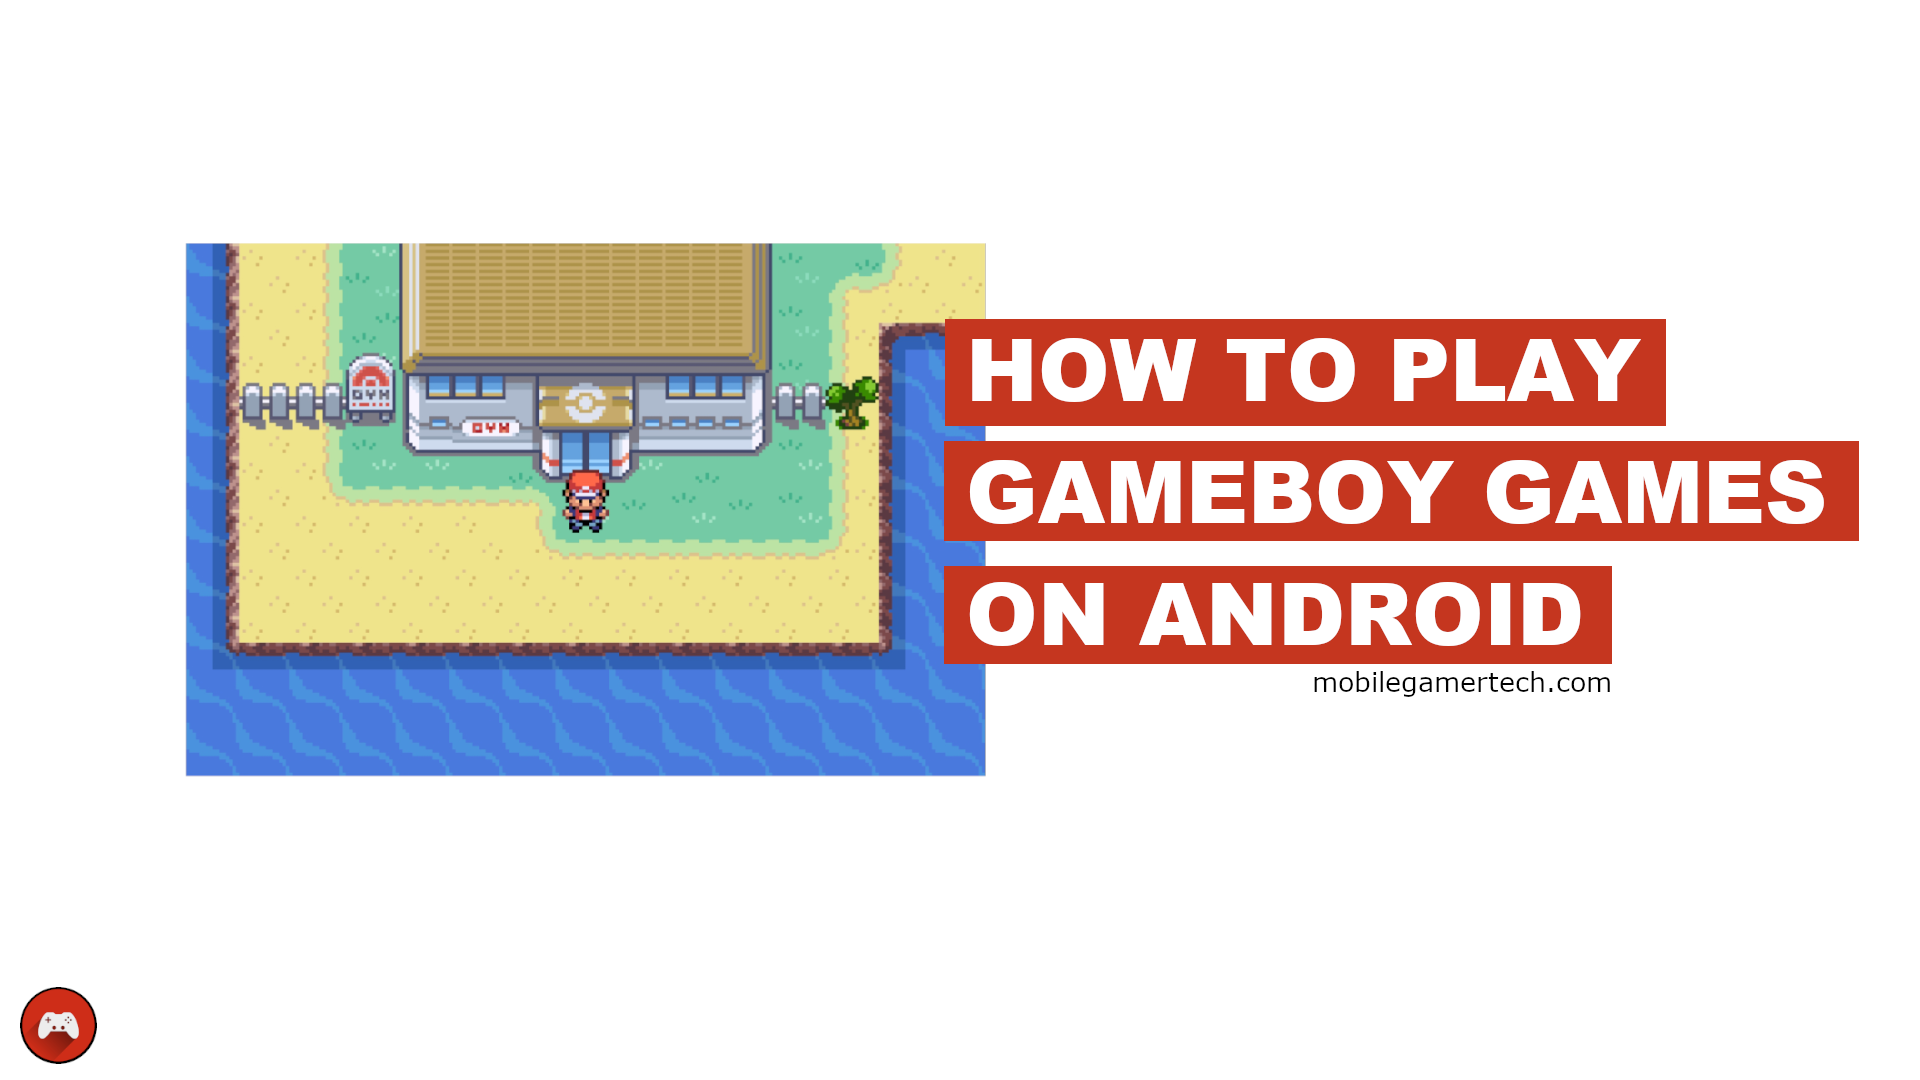 GameBoy on Android